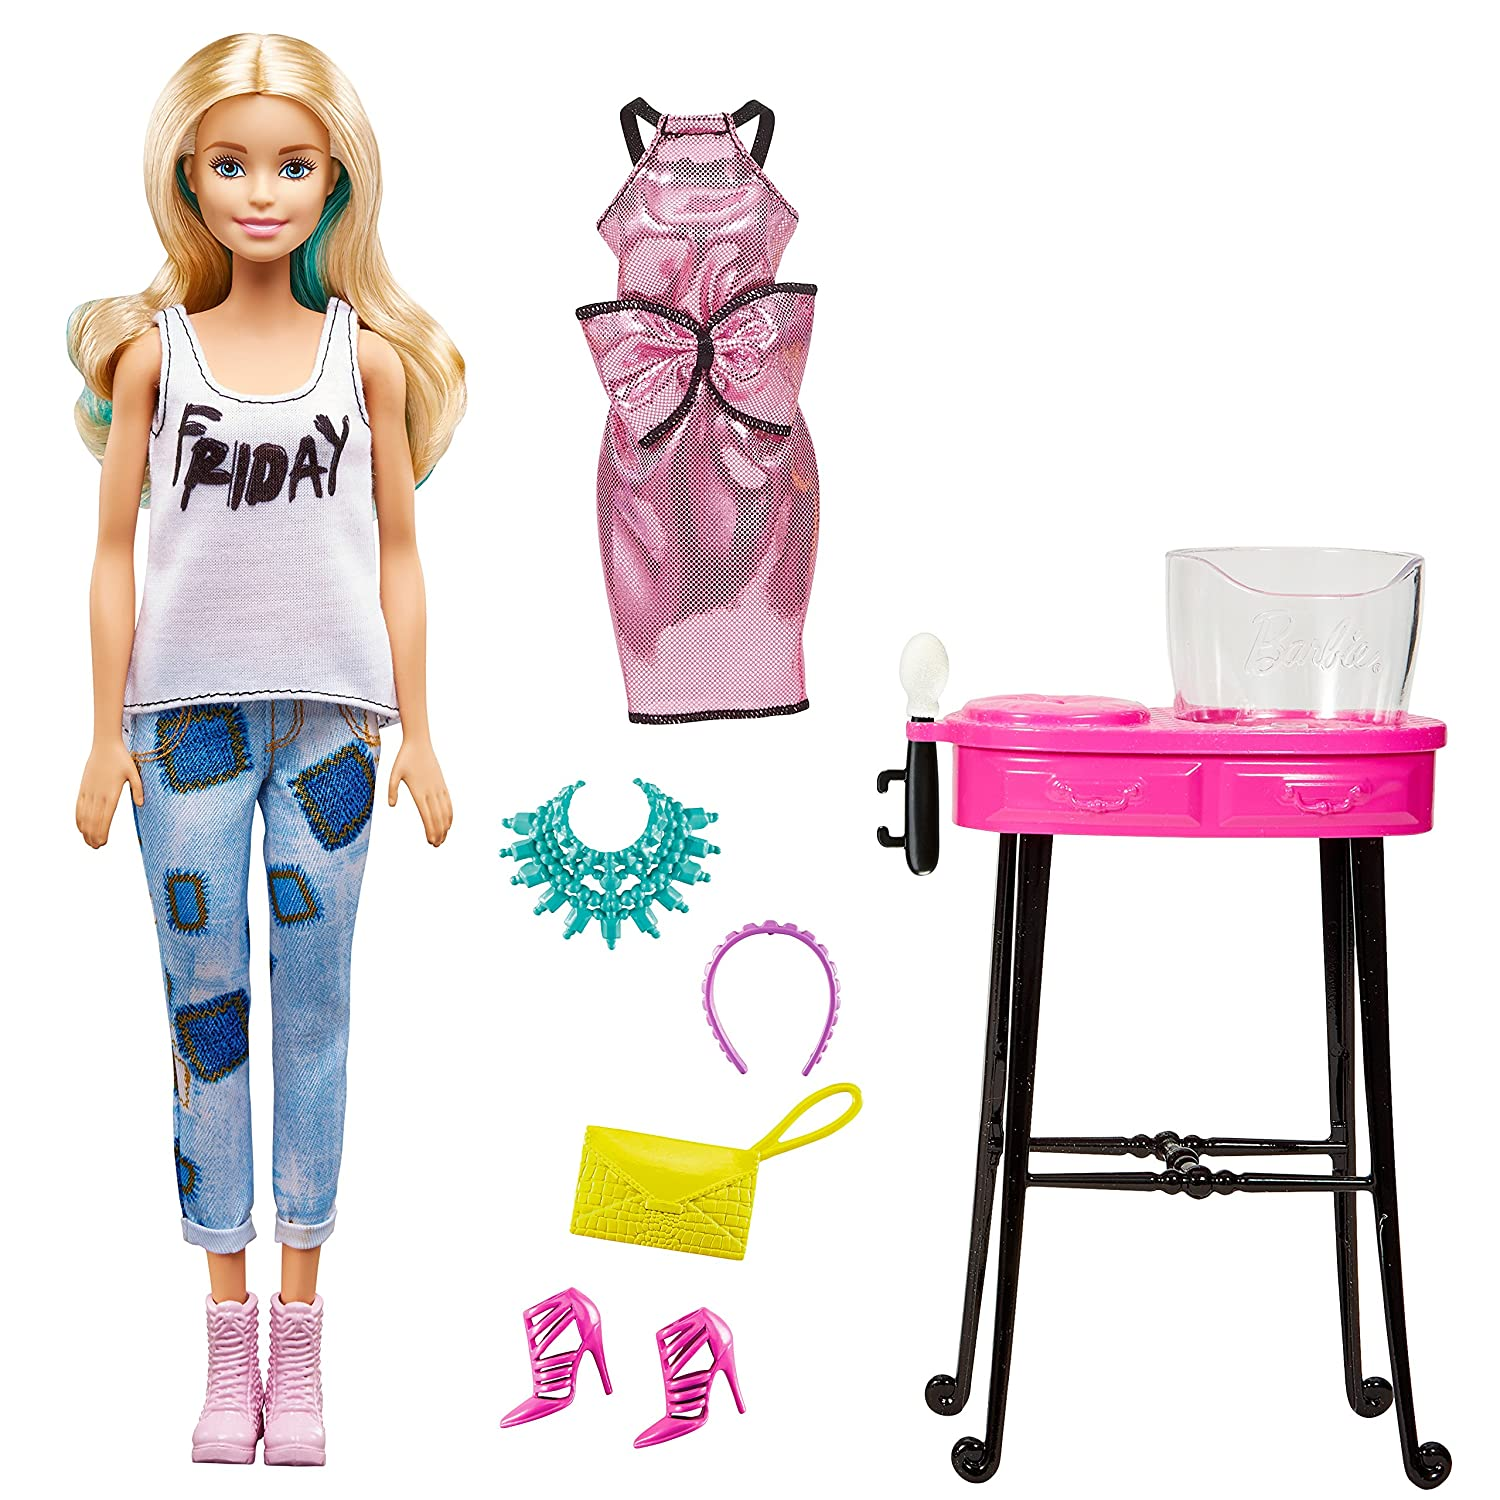 Amazon.com: BARBIE DAY TO NIGHT BLONDIE (twist to change hair color ...